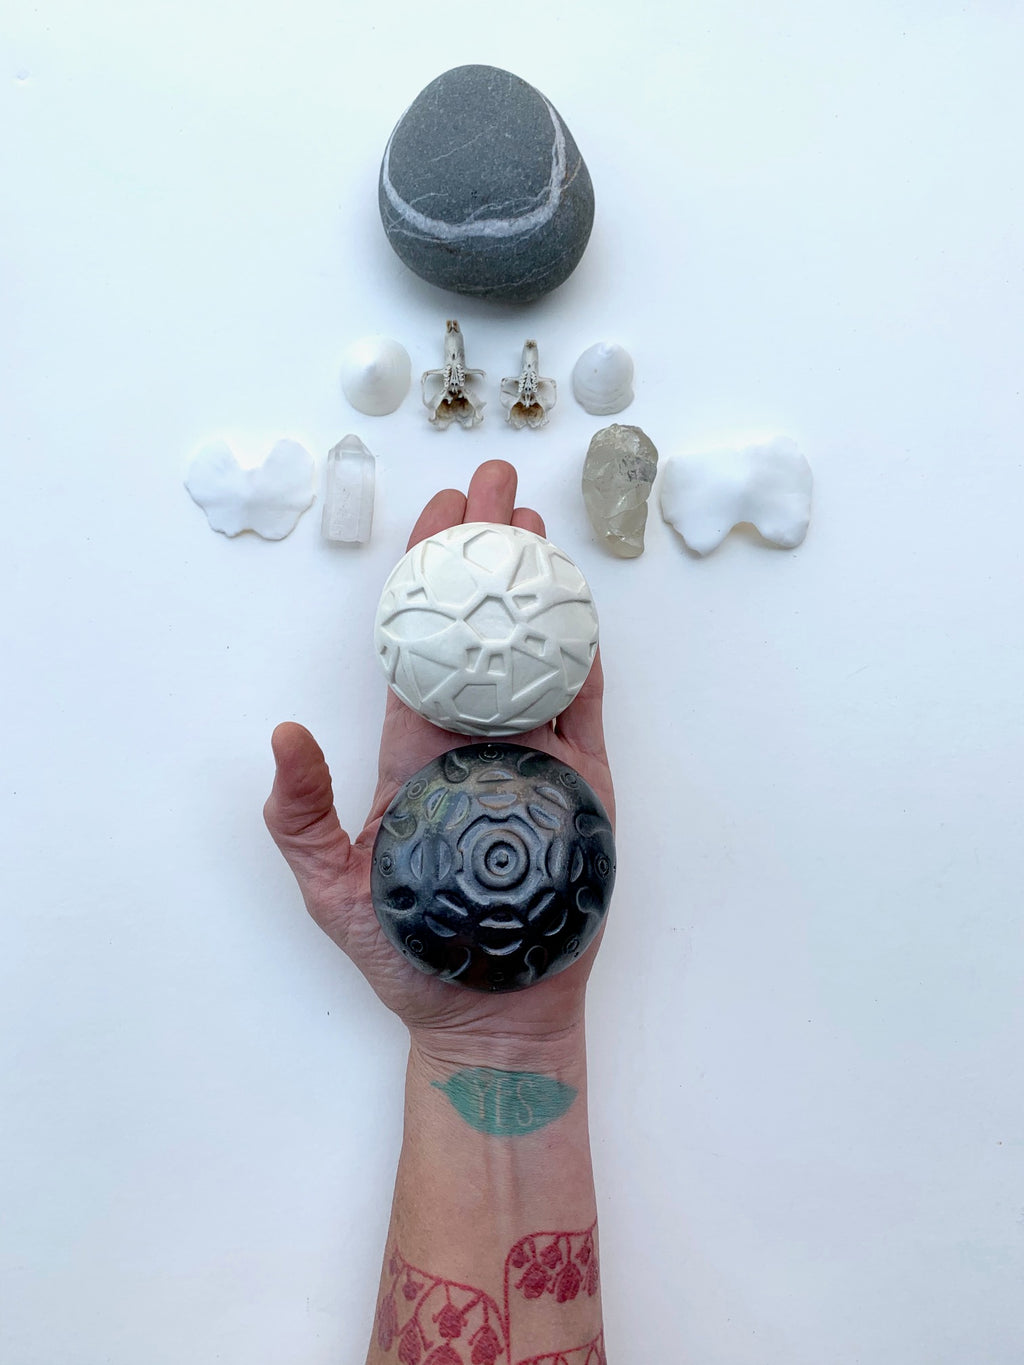 sold - meditation sculptures / one of a kind ceramic pieces for sacred spaces